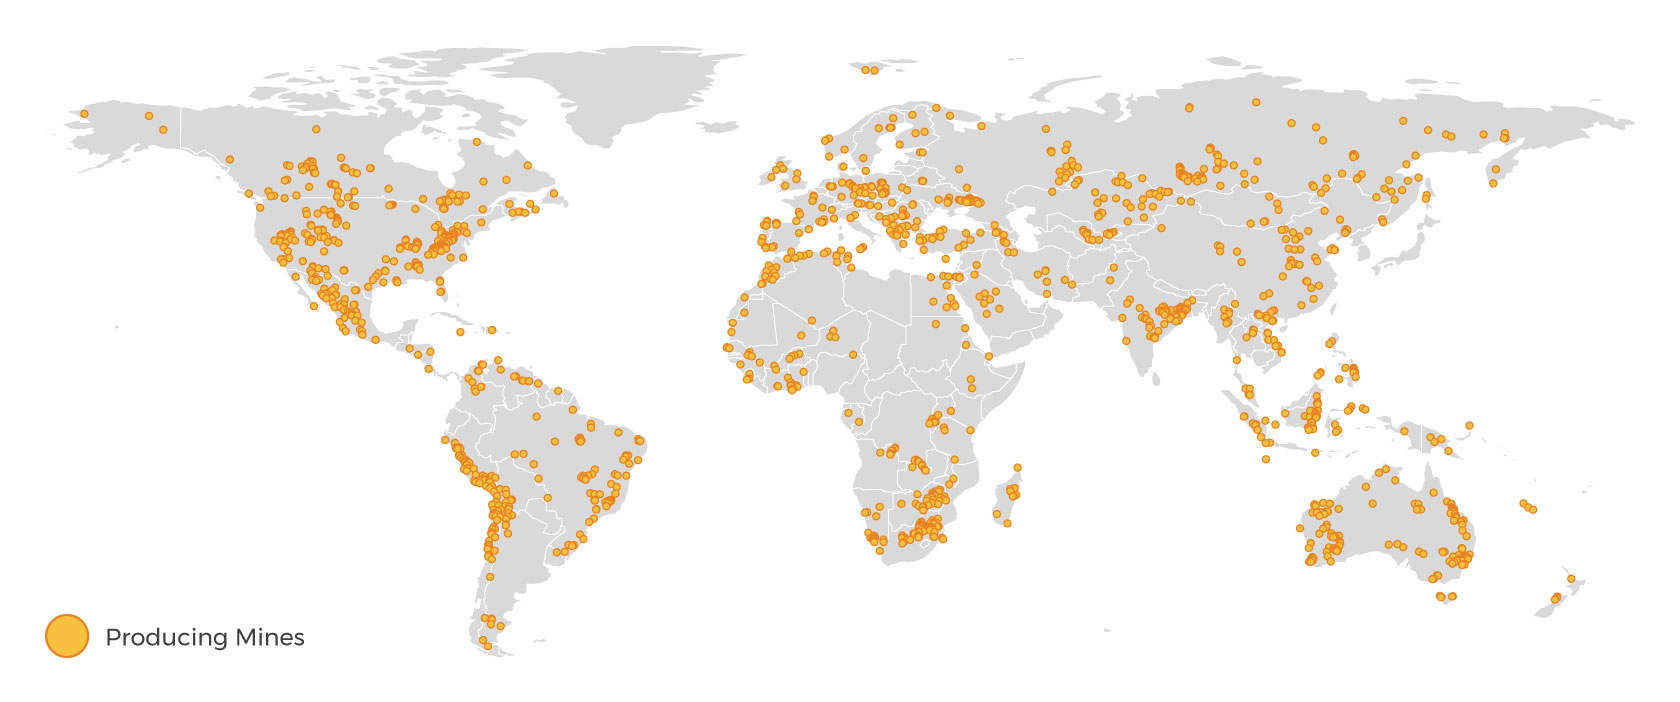 Global Producing Mines